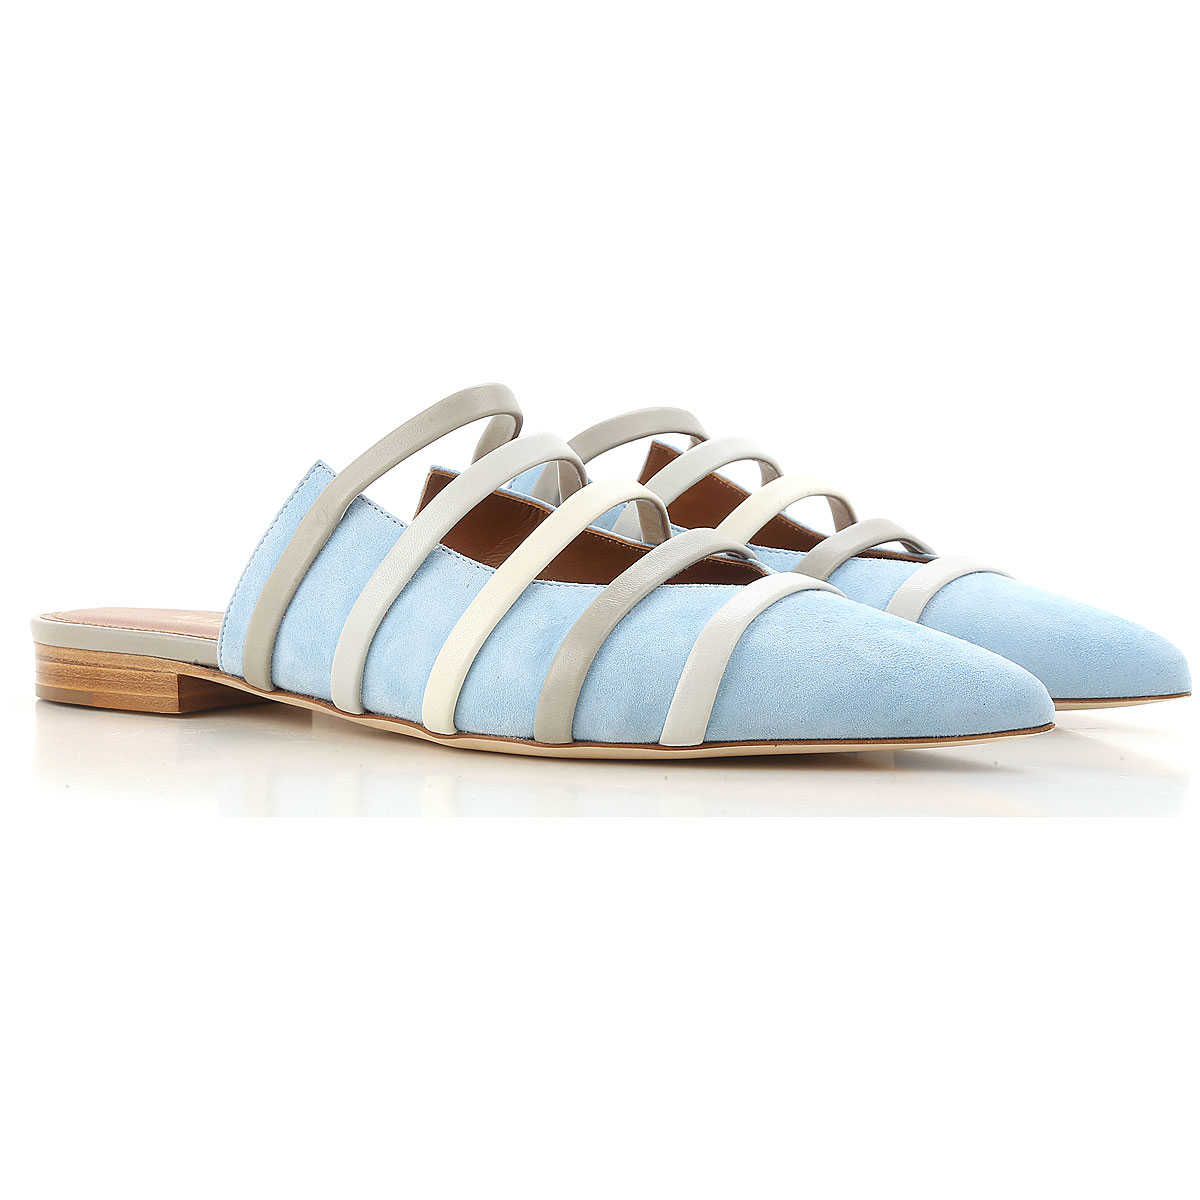 Malone Souliers Ballet Flats Ballerina Shoes for Women On Sale in Outlet Powder Blue SE - GOOFASH